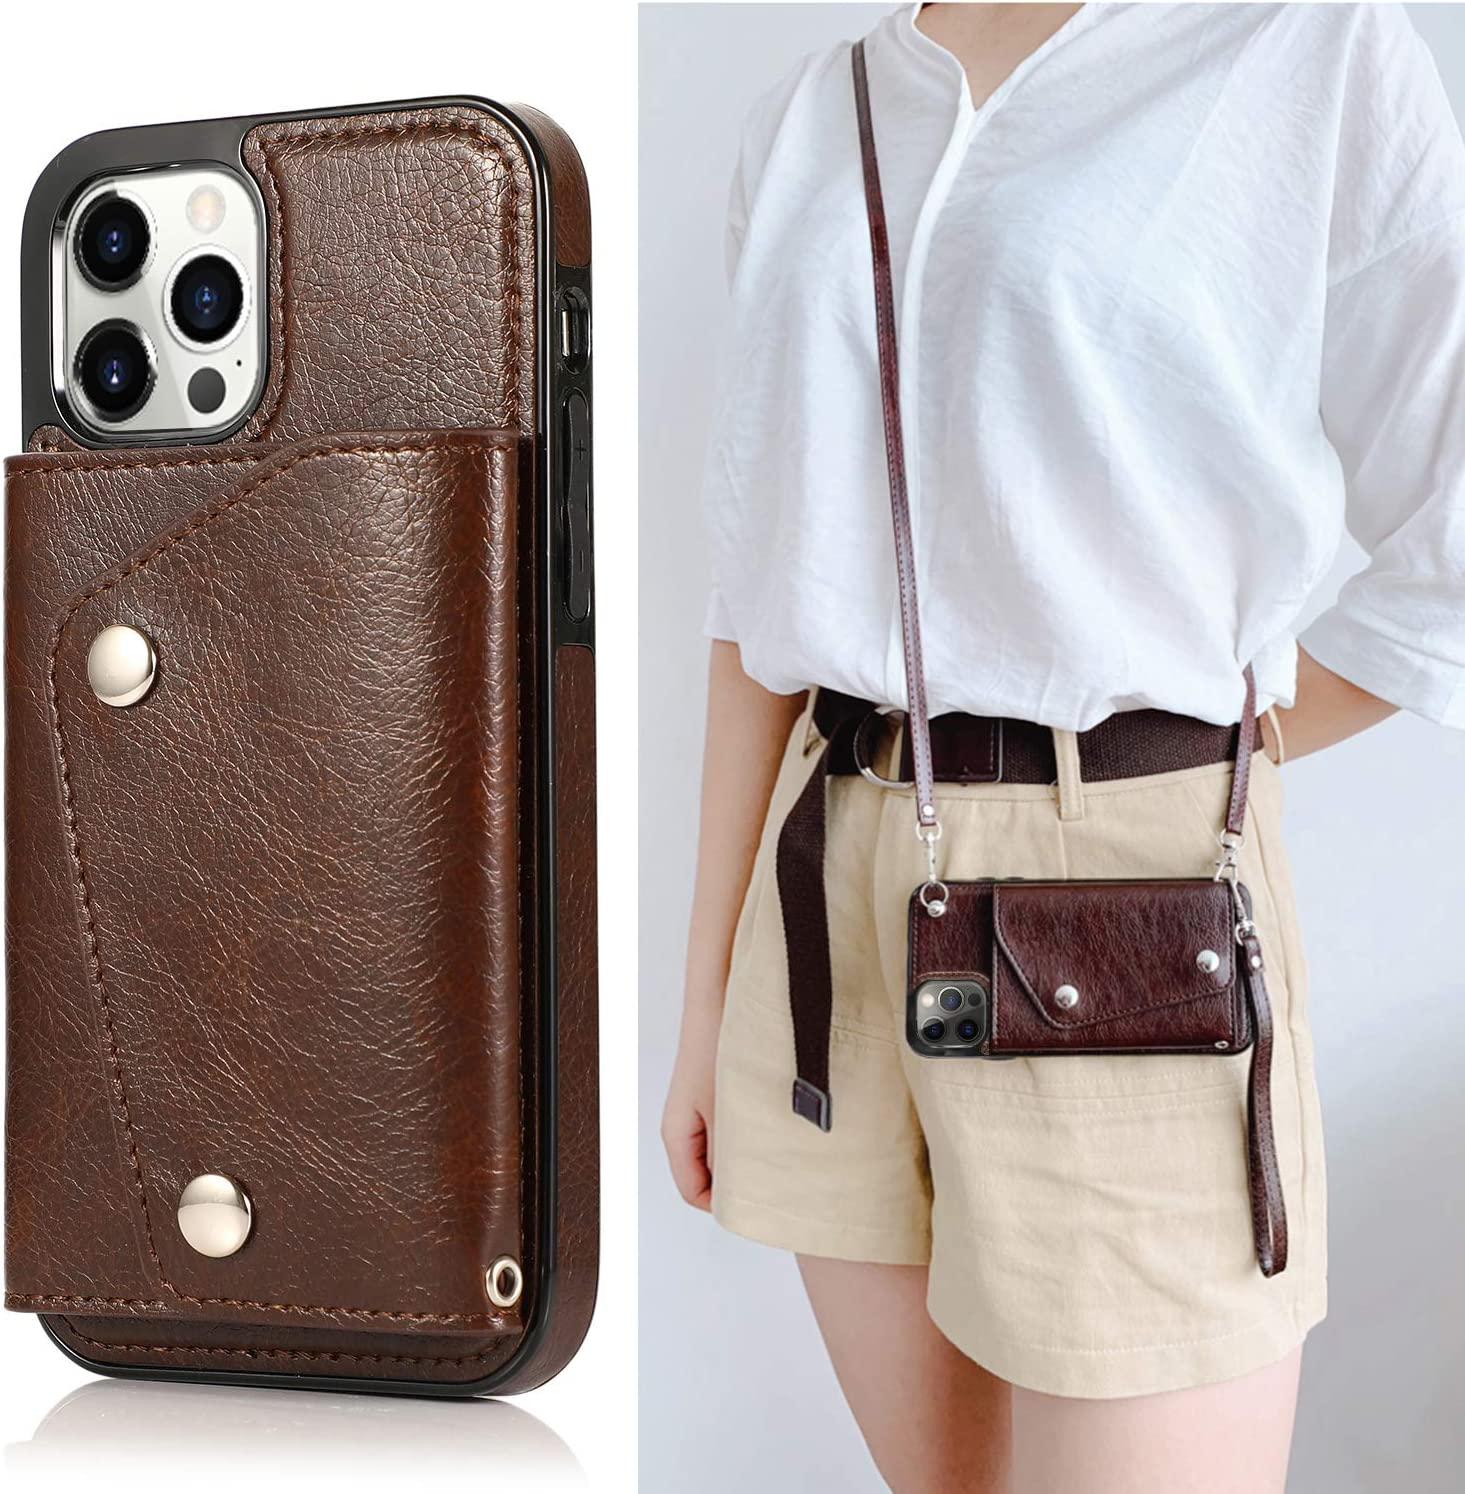 LUVI iPhone 12/iPhone 12 Pro Wallet Card Holder Case with Crossbody Neck Strap Lanyard Handbag Wrist Strap PU Leather Flip Cover with Credit Card Slot Kickstands Stand Case 6.1 inch Brown